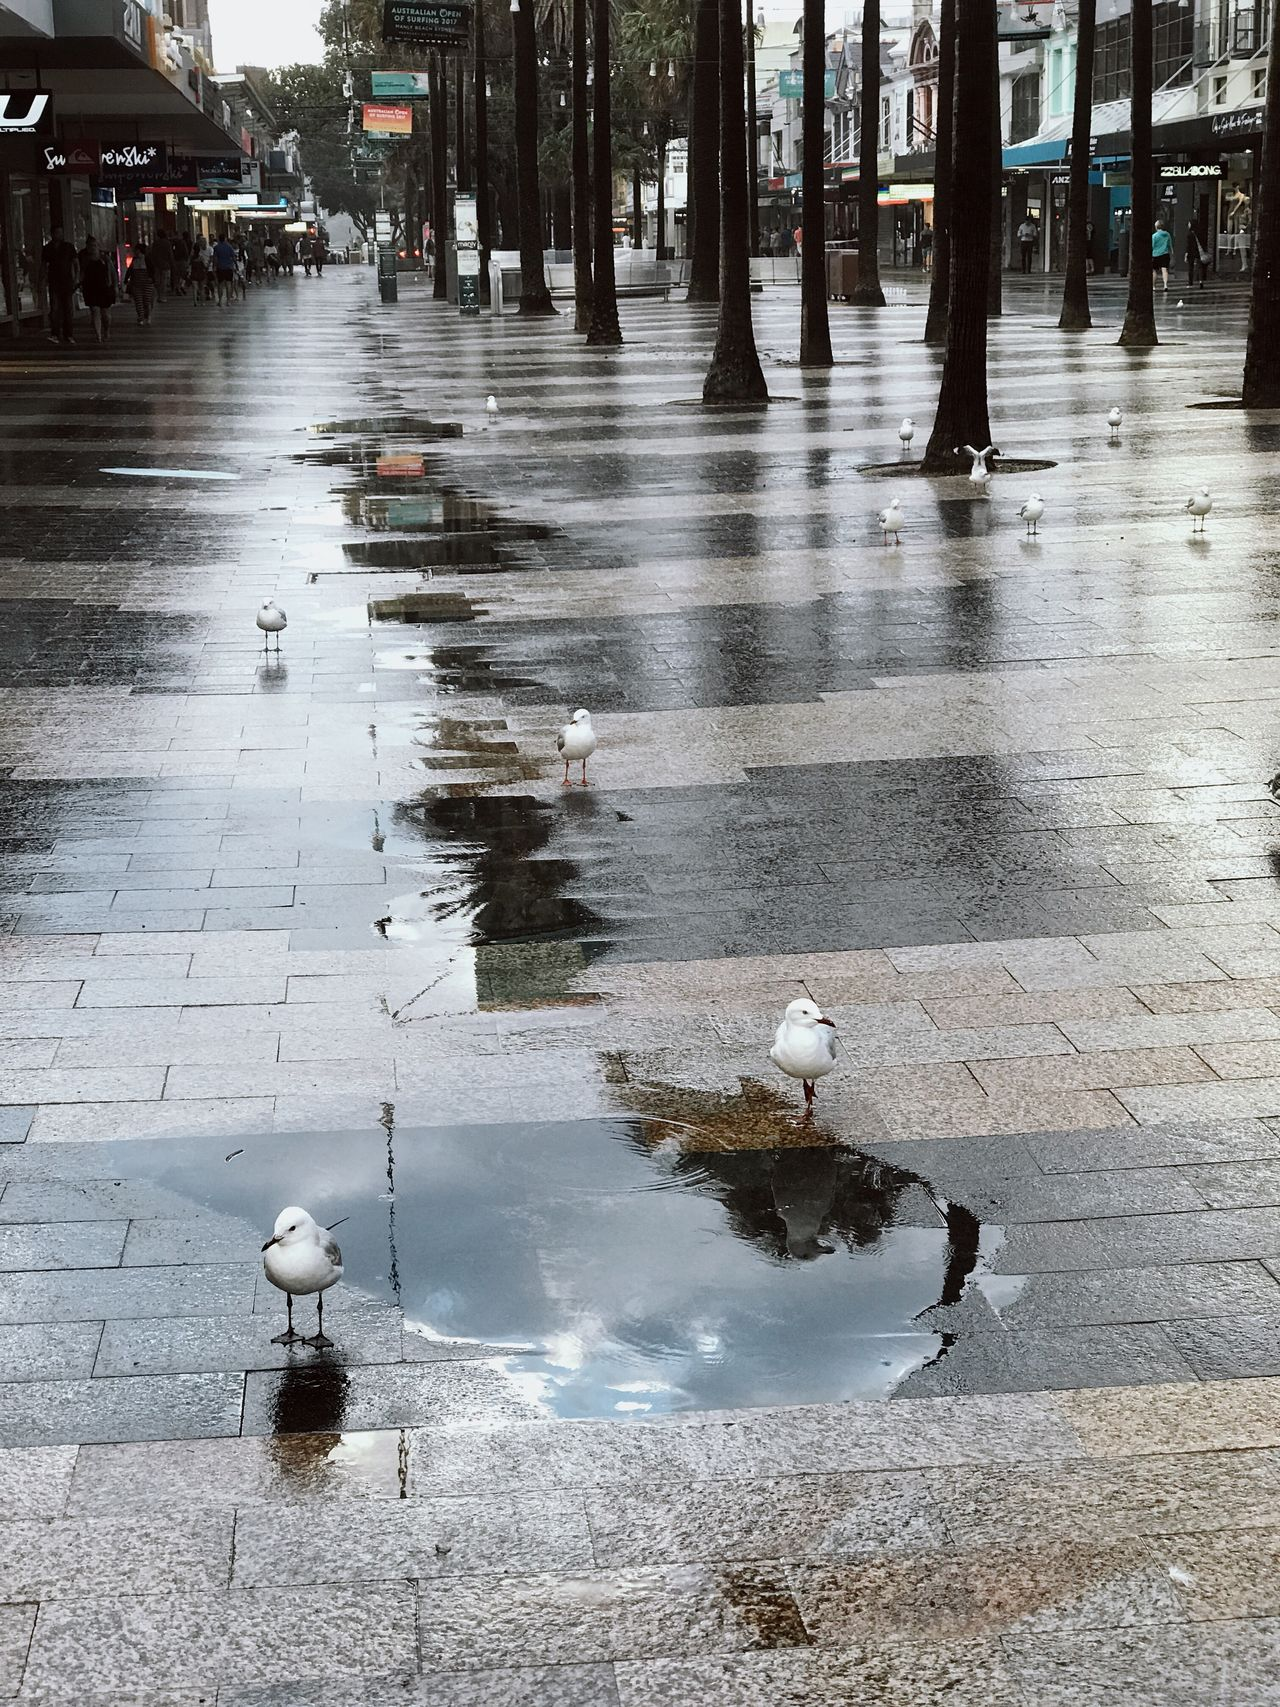 Bird Water Puddle Wet Outdoors Animal Themes Animals In The Wild City No People Day Natural Disaster Nature